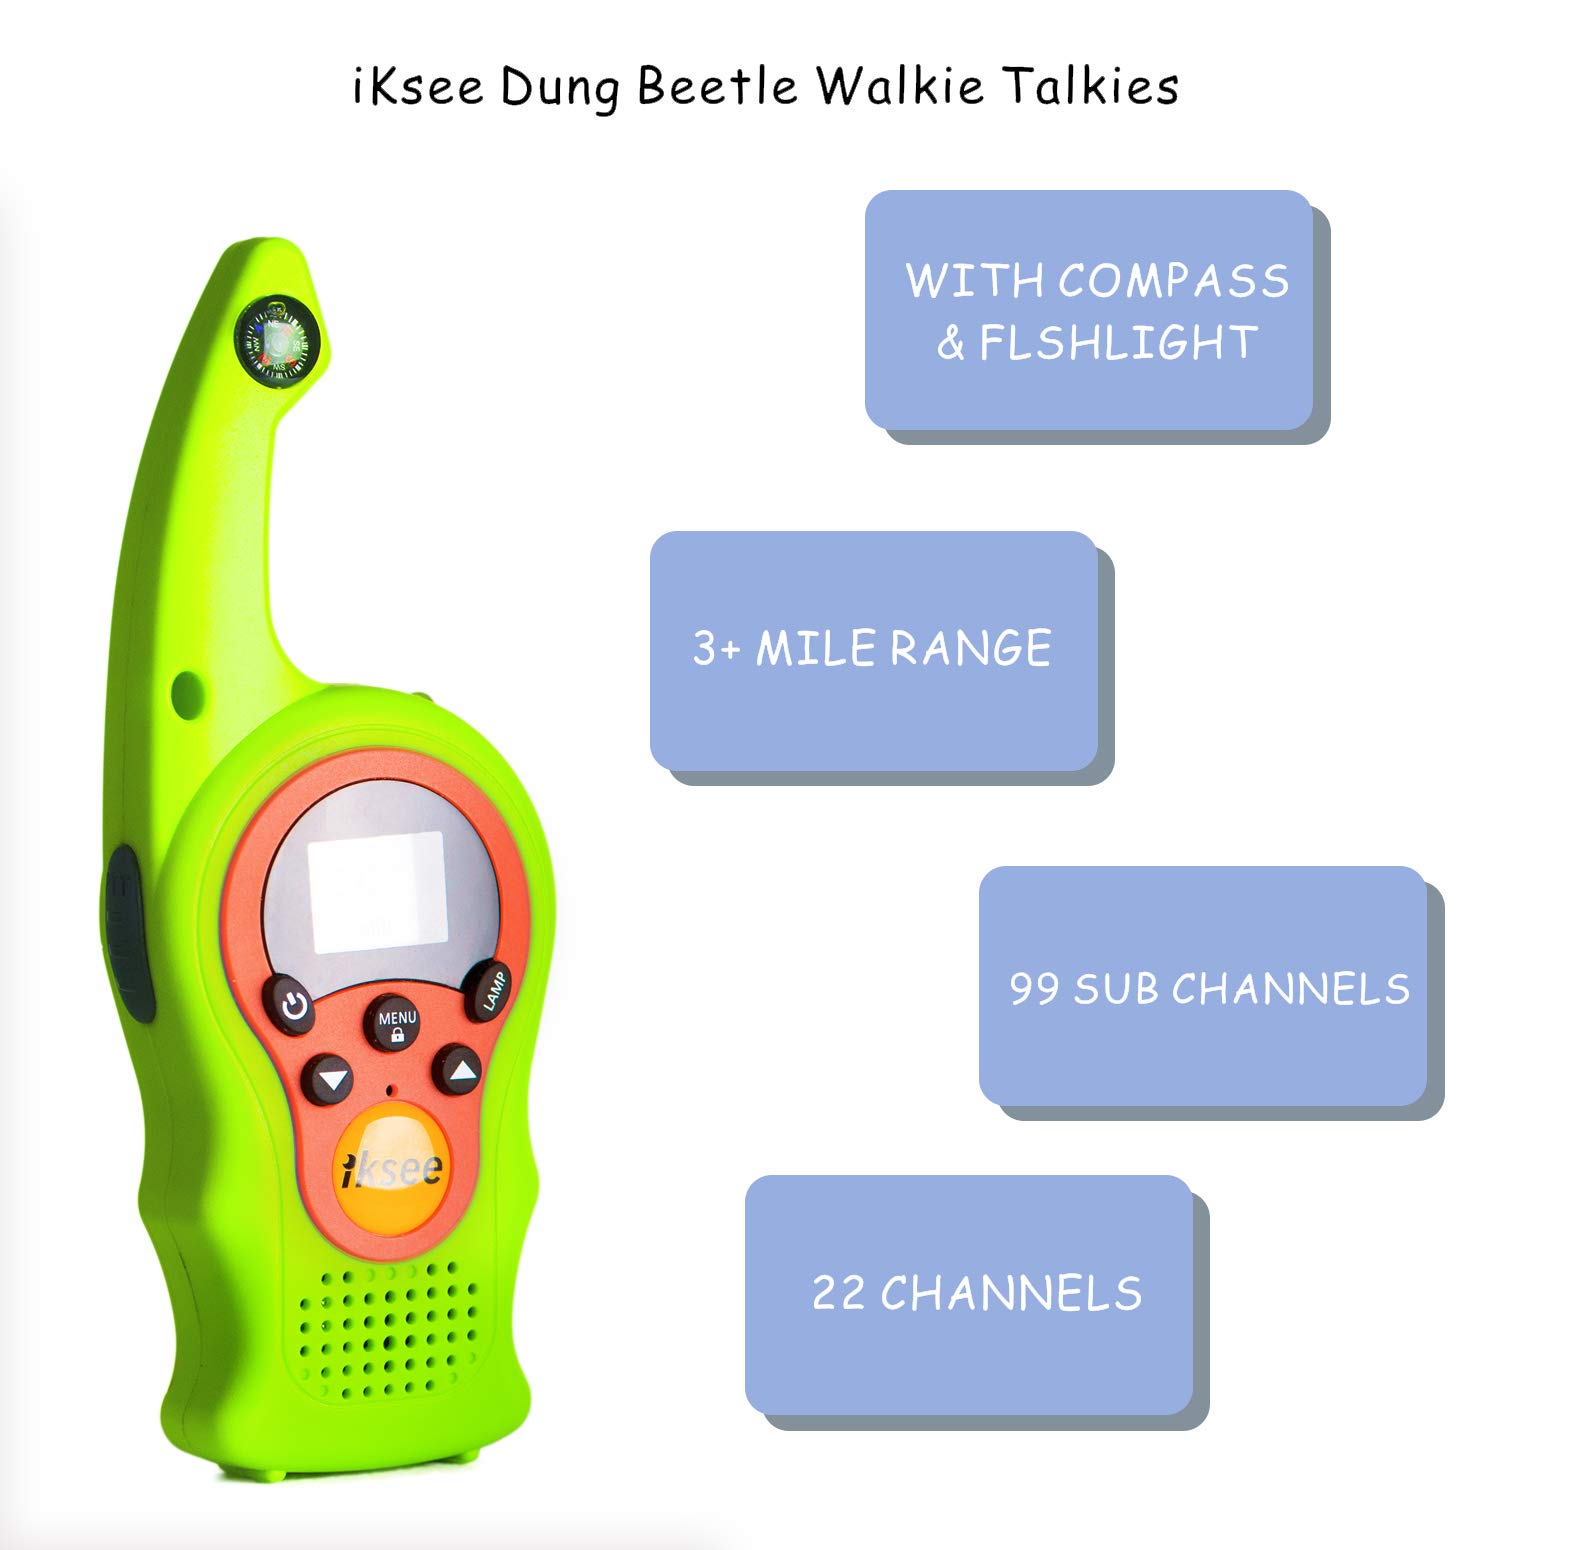 iKsee 2019 Must-Have Dung Beetle Walkie Talkie Set for Adults and Kids with Compass Flashlight, 3+ Mile Long Range Two Way Radios Toys Gifts for 5-12 Boys Girls Awards and Family Games (Green,1 Pair) by iKsee (Image #3)